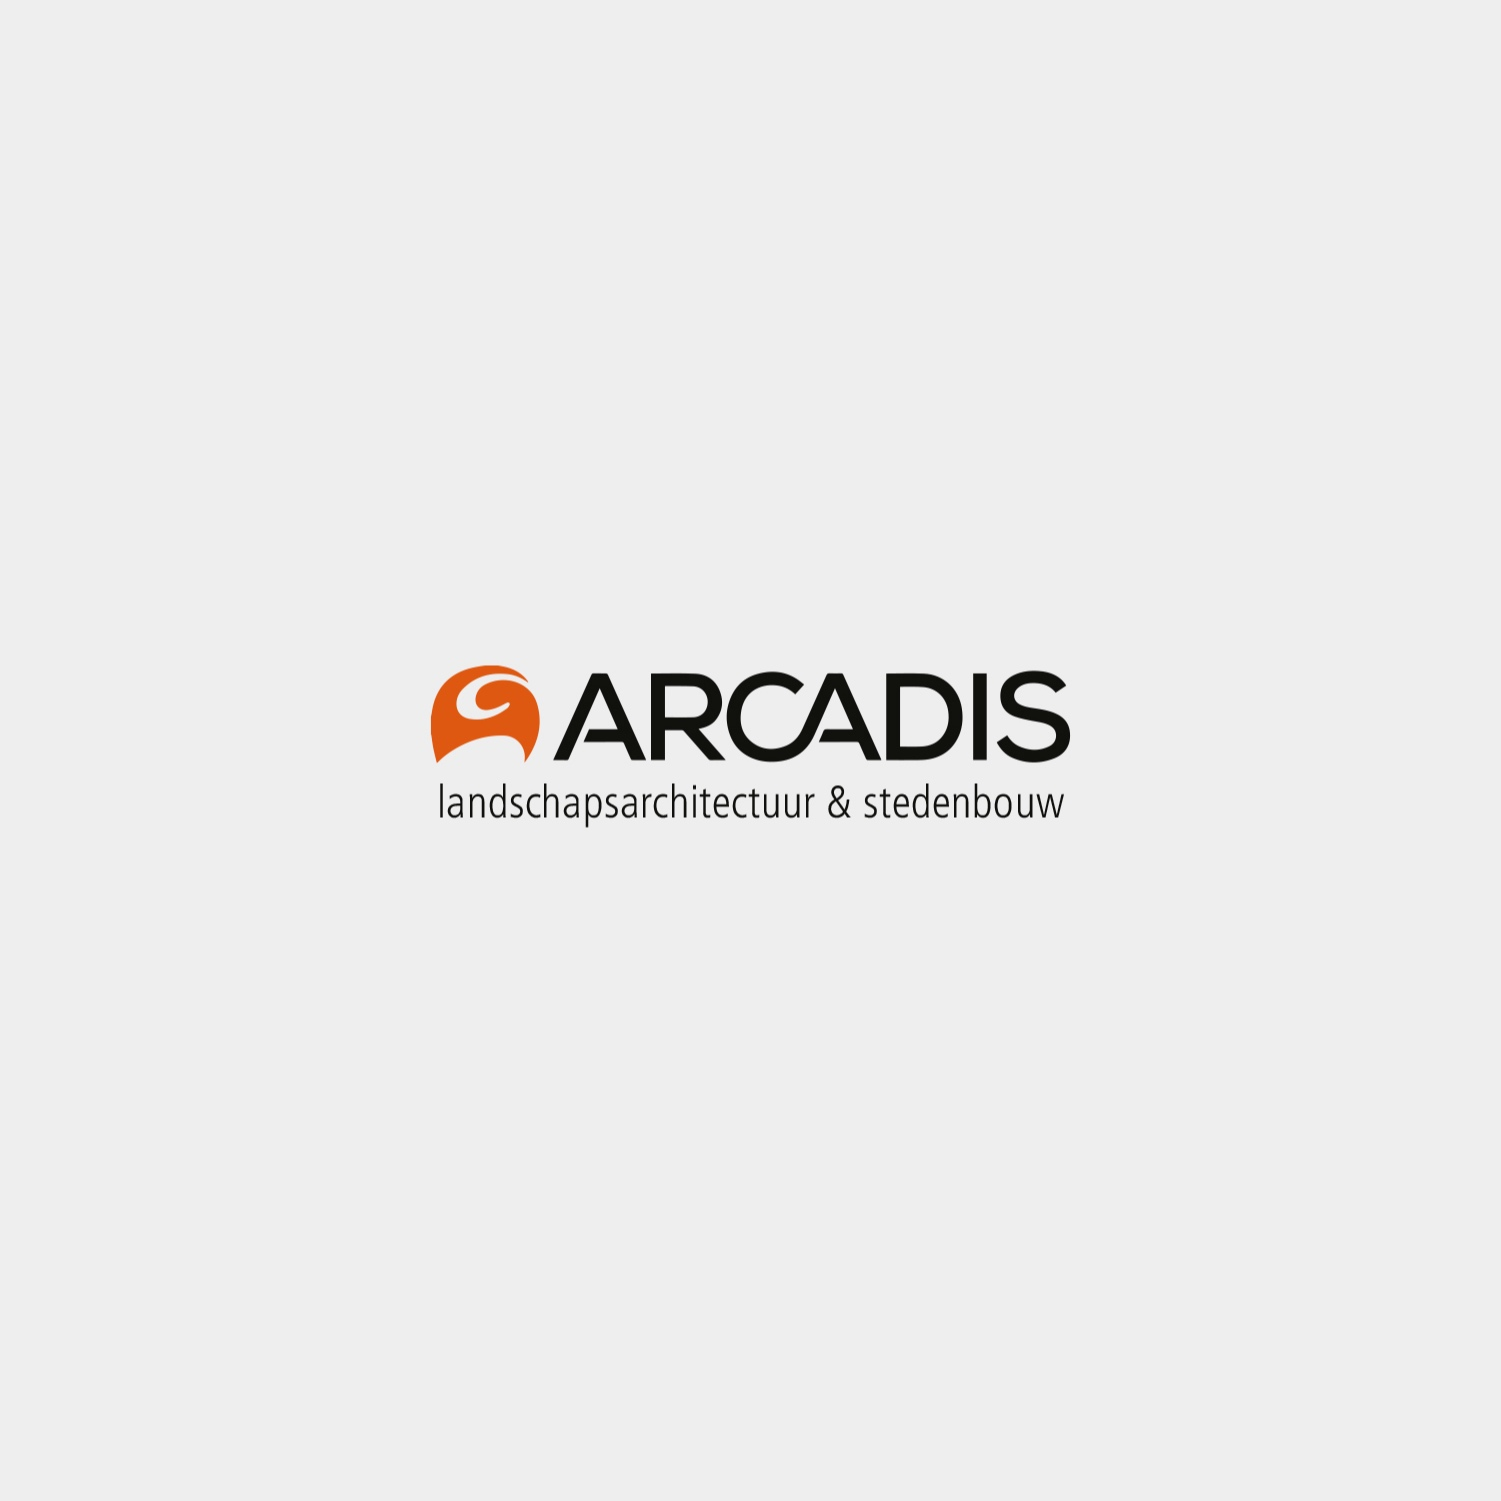 Arcadis - Arcadis is a global Design & Consultancy firm for natural and built assets. Arcadis landscape architecture & urbanism is responsible for the design and planting schemes of the roof gardens. They believe landscape architecture is a search for visionary designs that capture not only the eye, but also the heart.